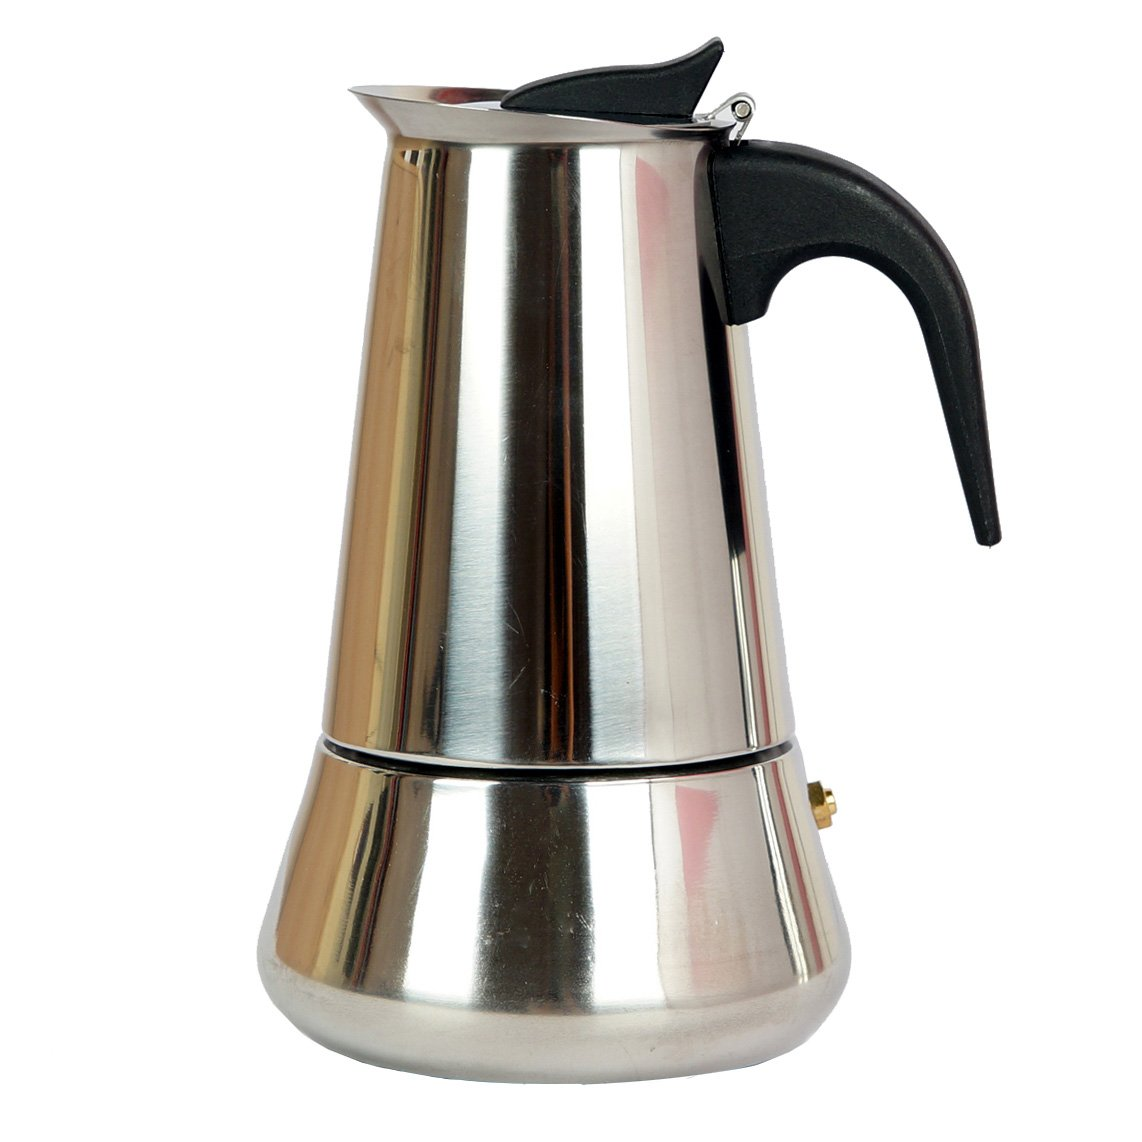 Mykumi Moka Pot 4 Cup Espresso Maker, Stainless Steel for Gas, Electric and Ceramic Stovetops (4 Cup)